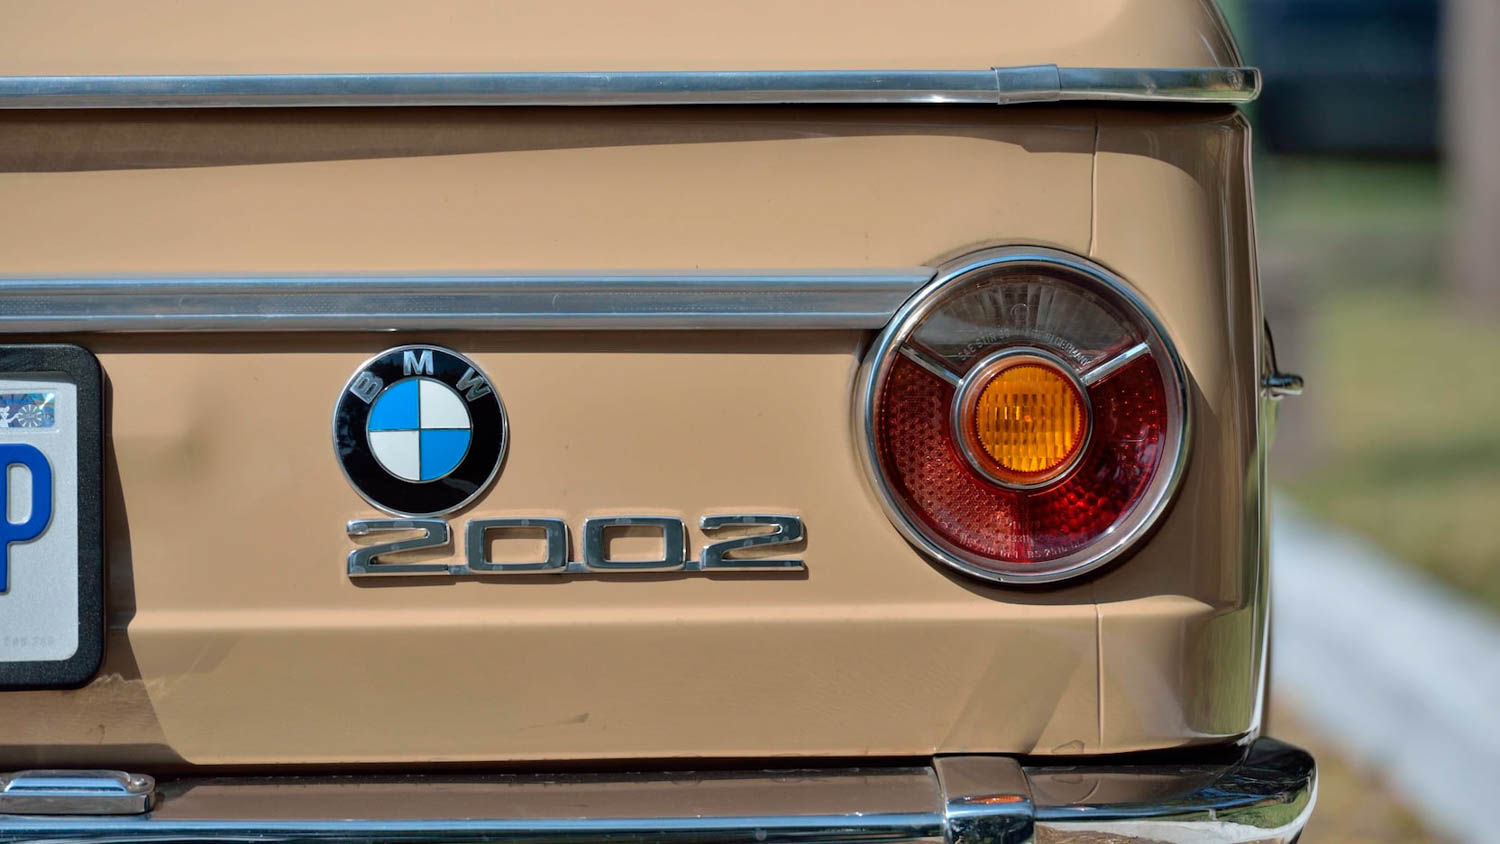 1972 BMW 2002 badges